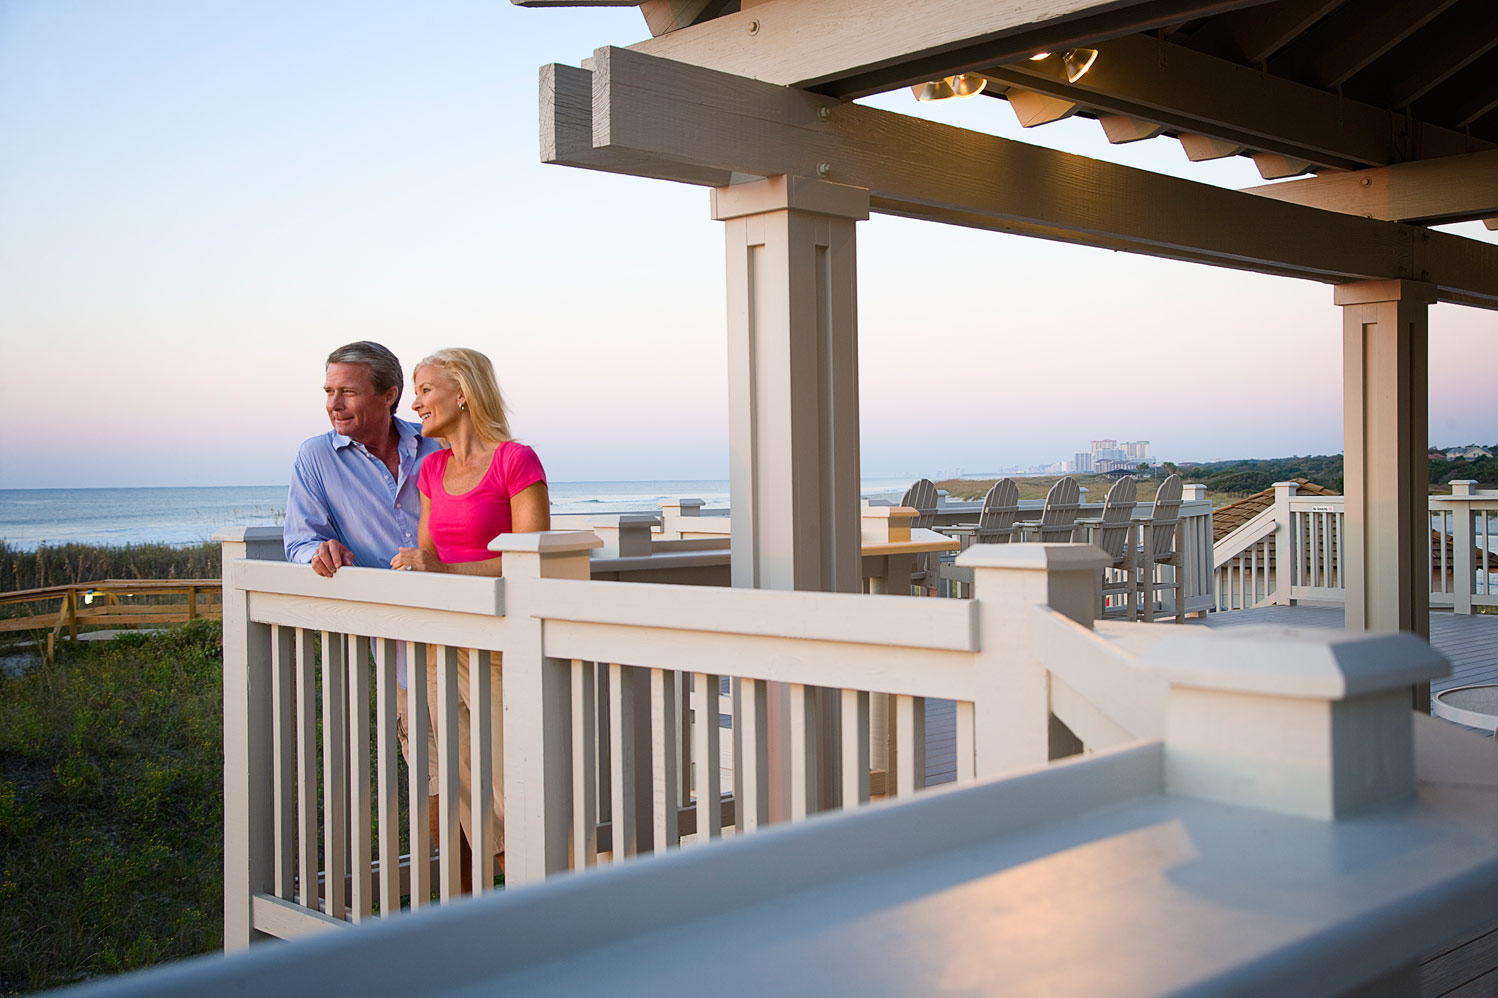 Take a break and visit the oceanfront Beach Club.